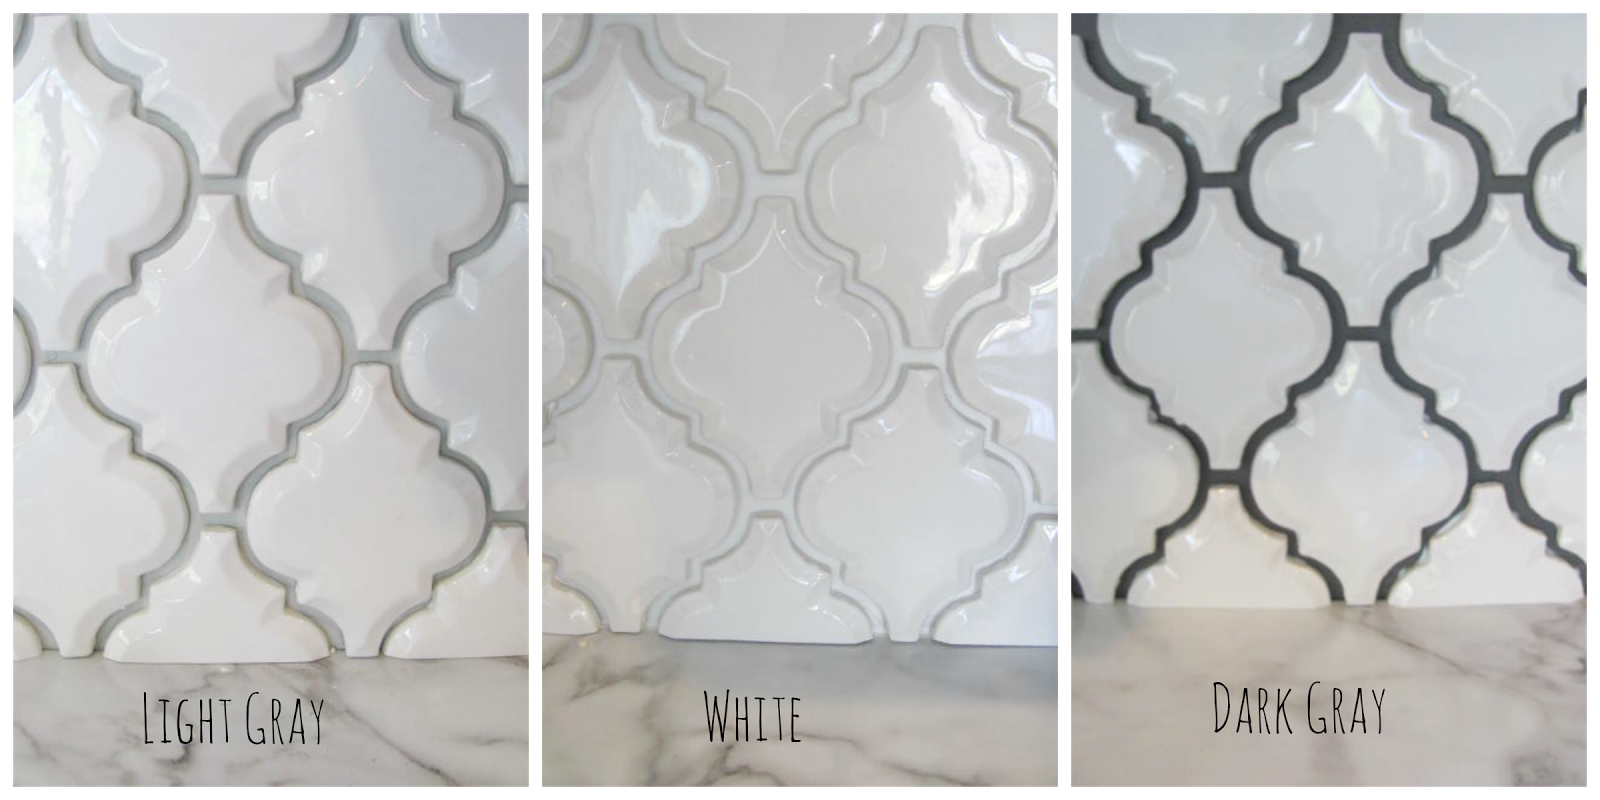 White Tile Bathroom Gray Grout arabesque white tile with grey grout - google search | kitchen